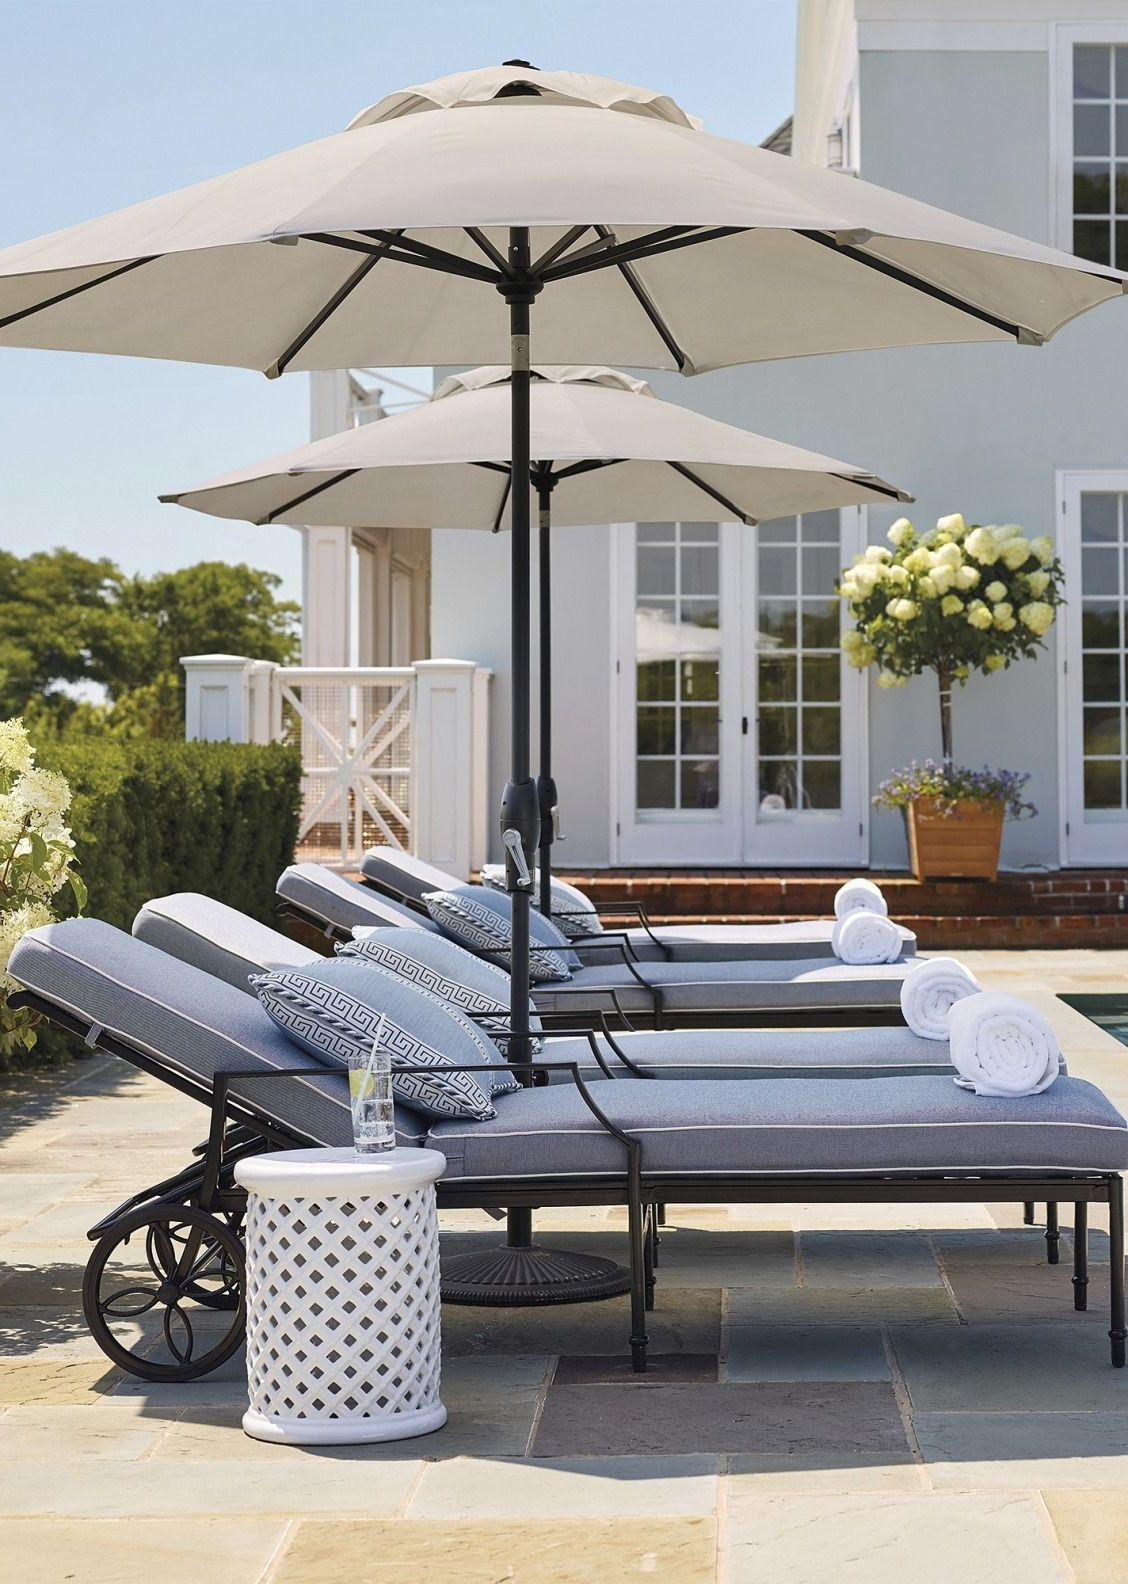 Grayson Chaise Lounge Chair With Cushions In Black Finish In Preferred Lattice Outdoor Patio Pool Chaise Lounges With Wheels And Cushion (View 18 of 25)